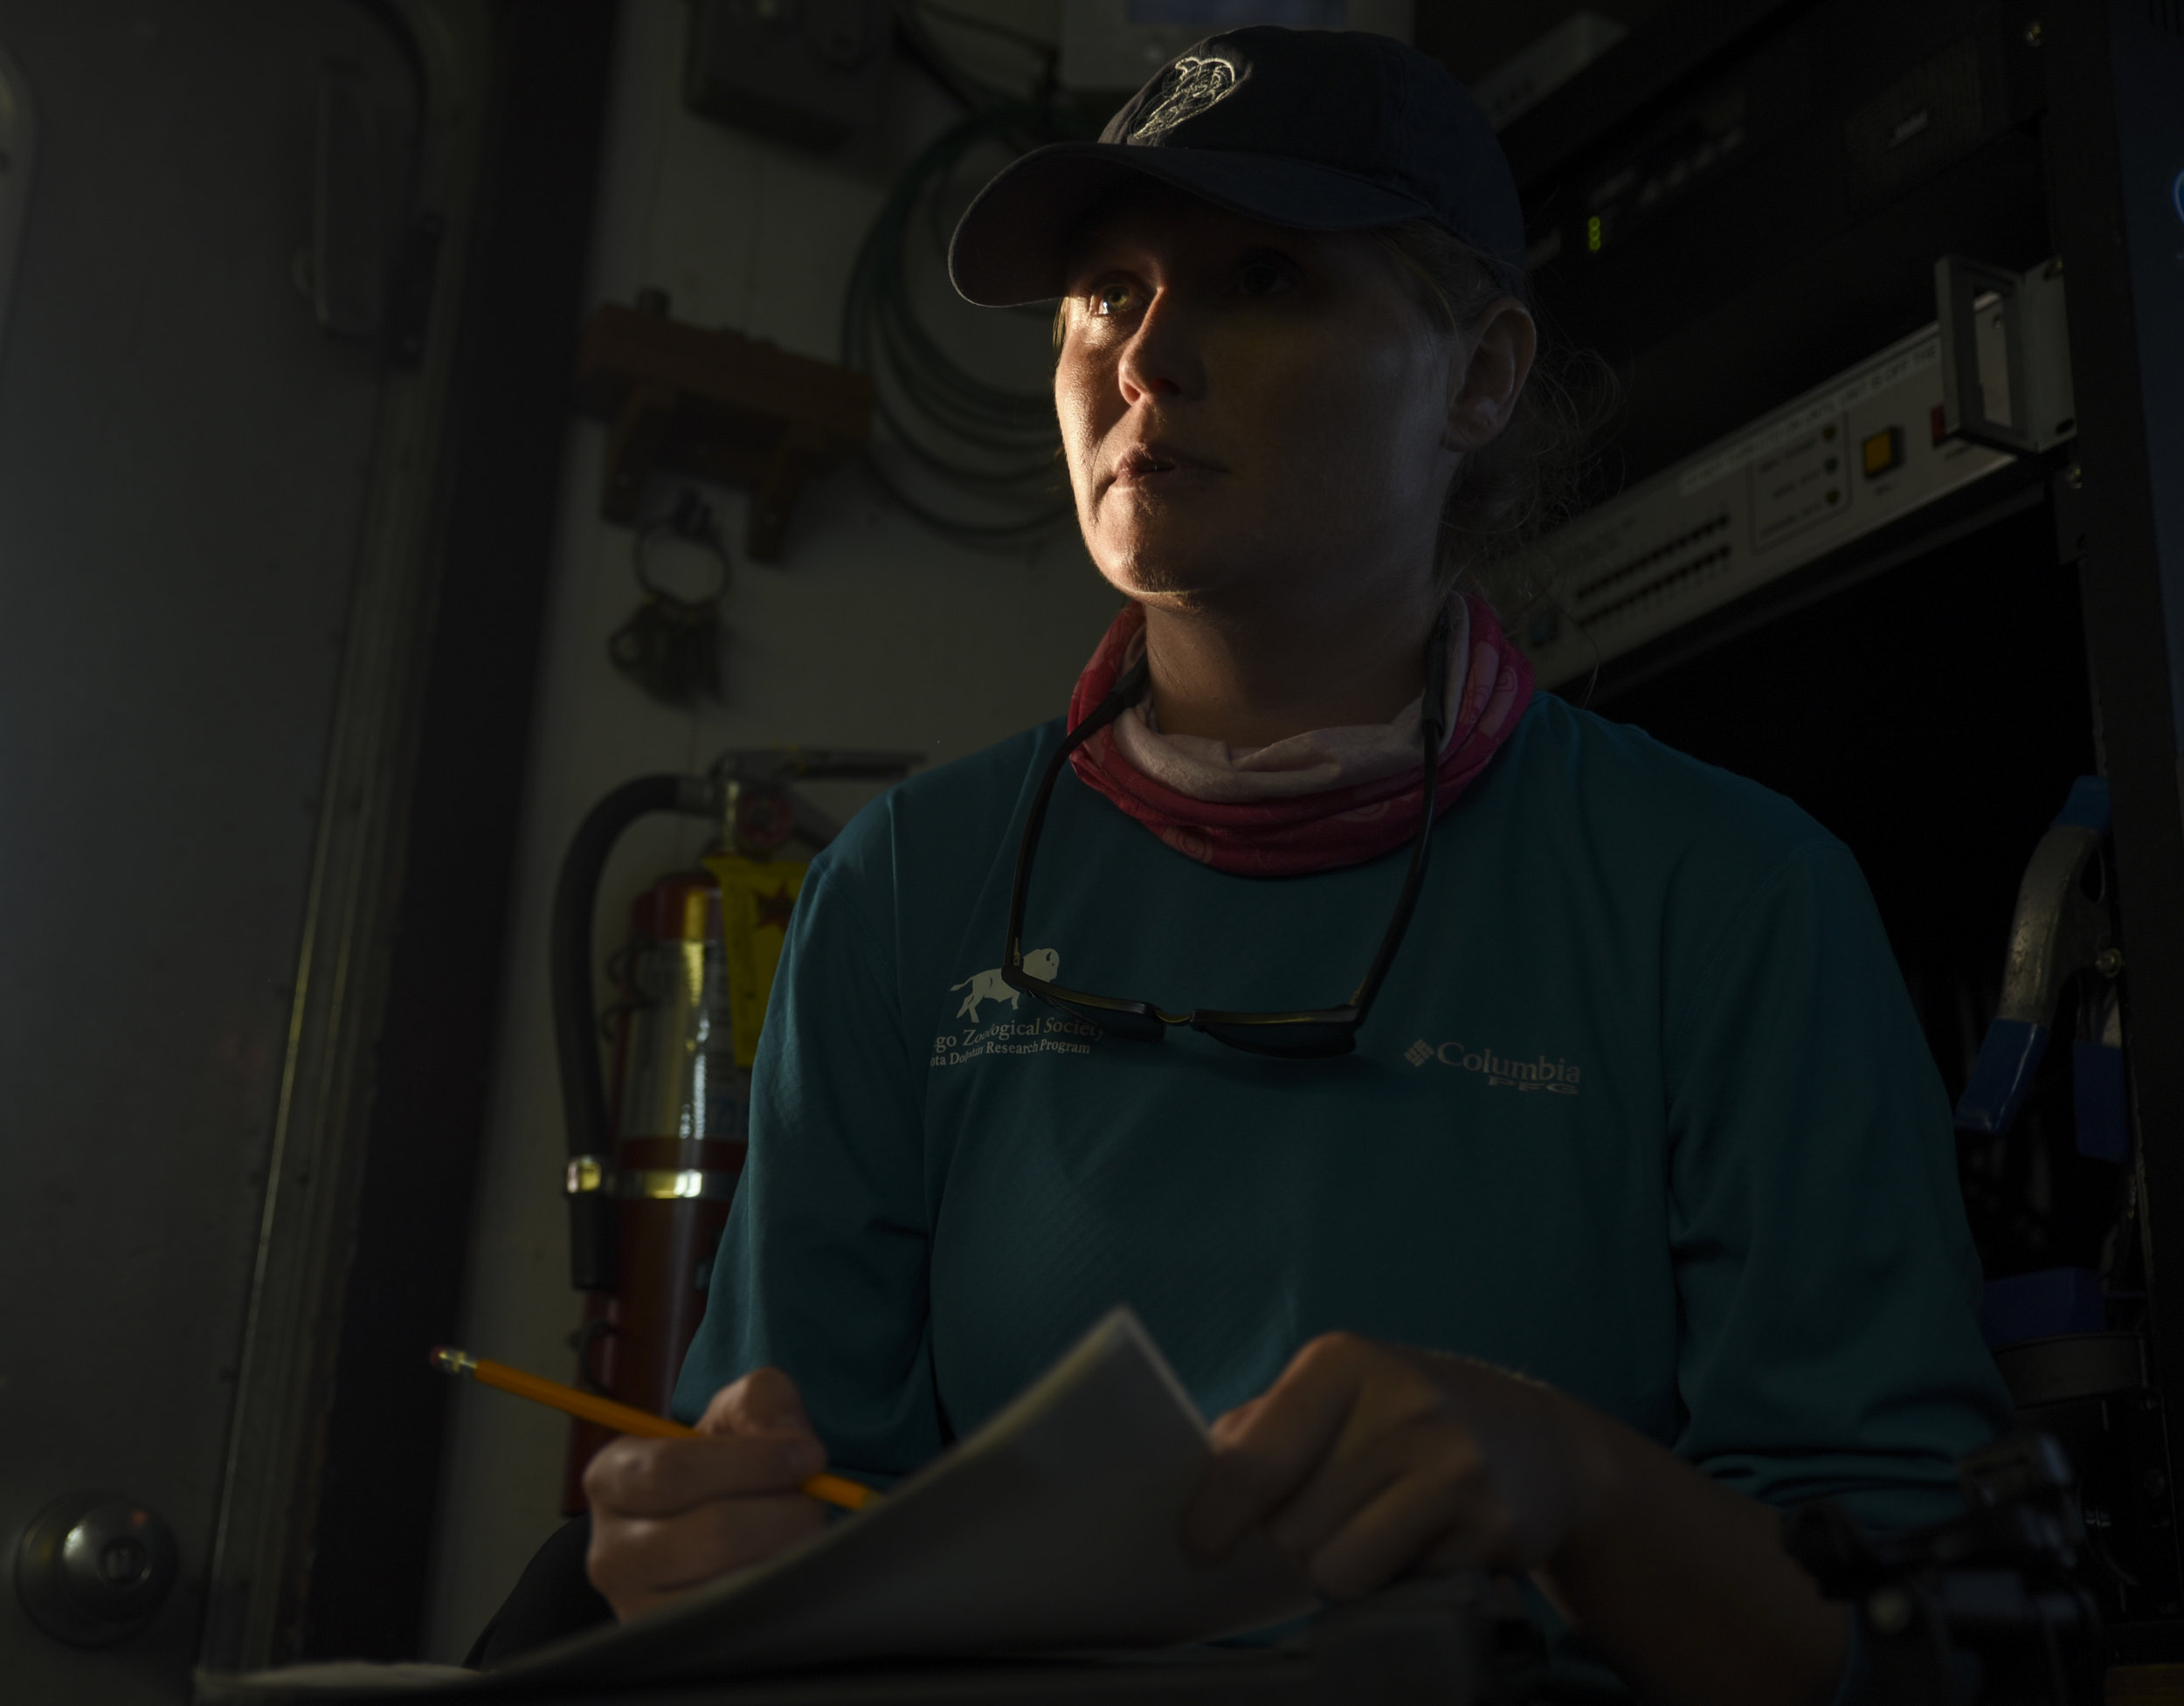 Kristen Wilkinson, a University of Florida PhD candidate, looks up from filling in a data sheet as the R/V Bellows steams back to Tampa Bay at sunset.